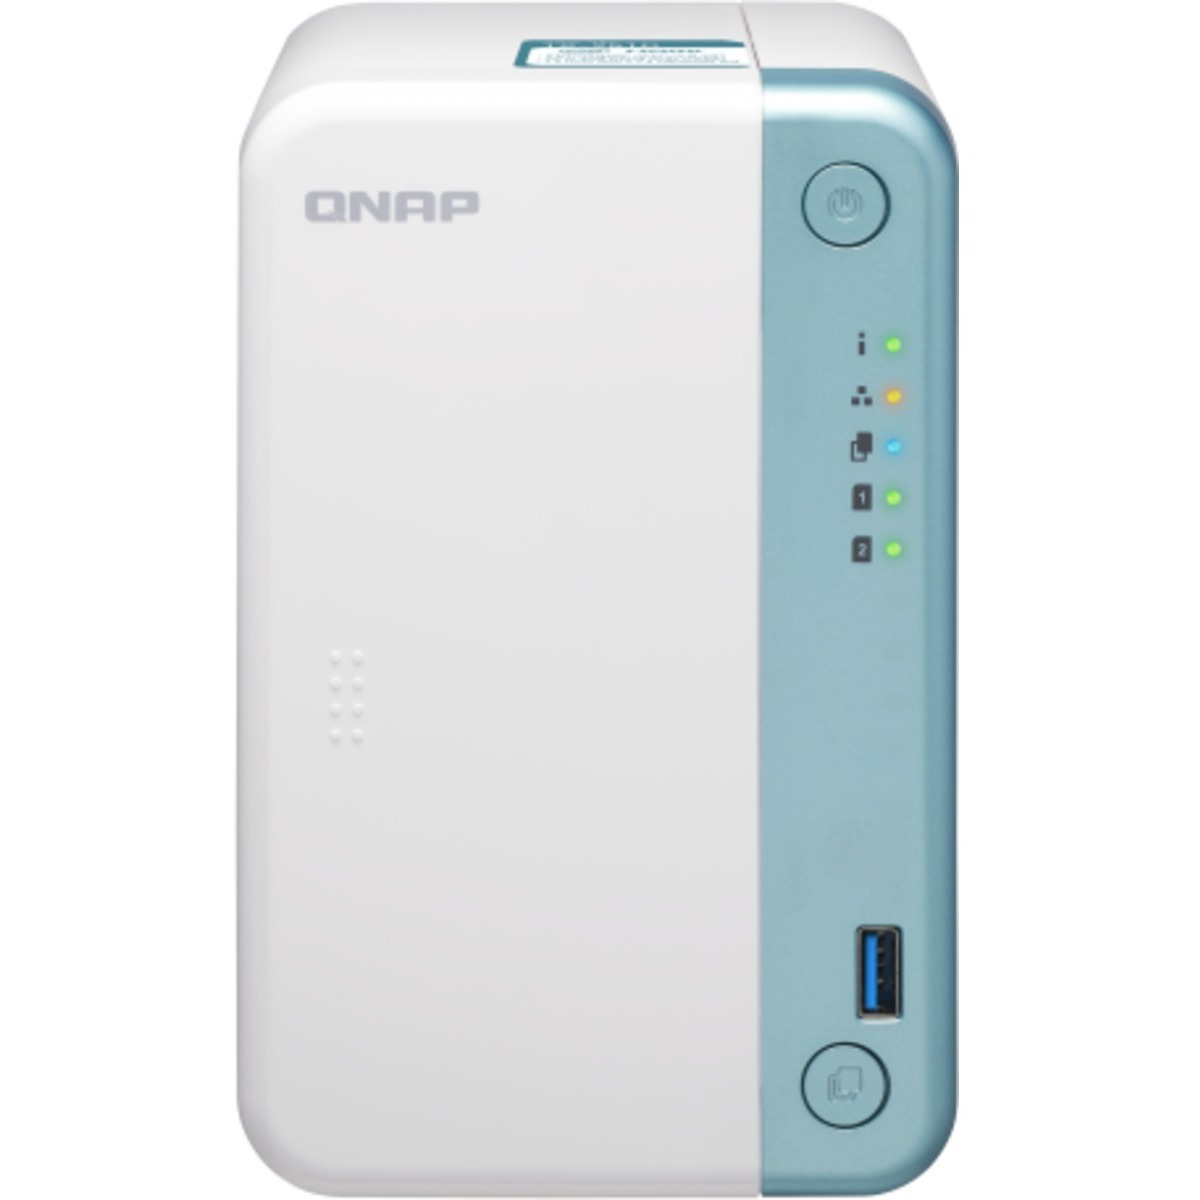 buy $1431 QNAP TS-251D 28tb Desktop NAS - Network Attached Storage Device 2x14000gb Western Digital Red WD140EFFX 3.5 7200rpm SATA 6Gb/s HDD NAS Class Drives Installed - Burn-In Tested - nas headquarters buy network attached storage server device das new raid-5 free shipping usa inventory clearance sale happening now TS-251D